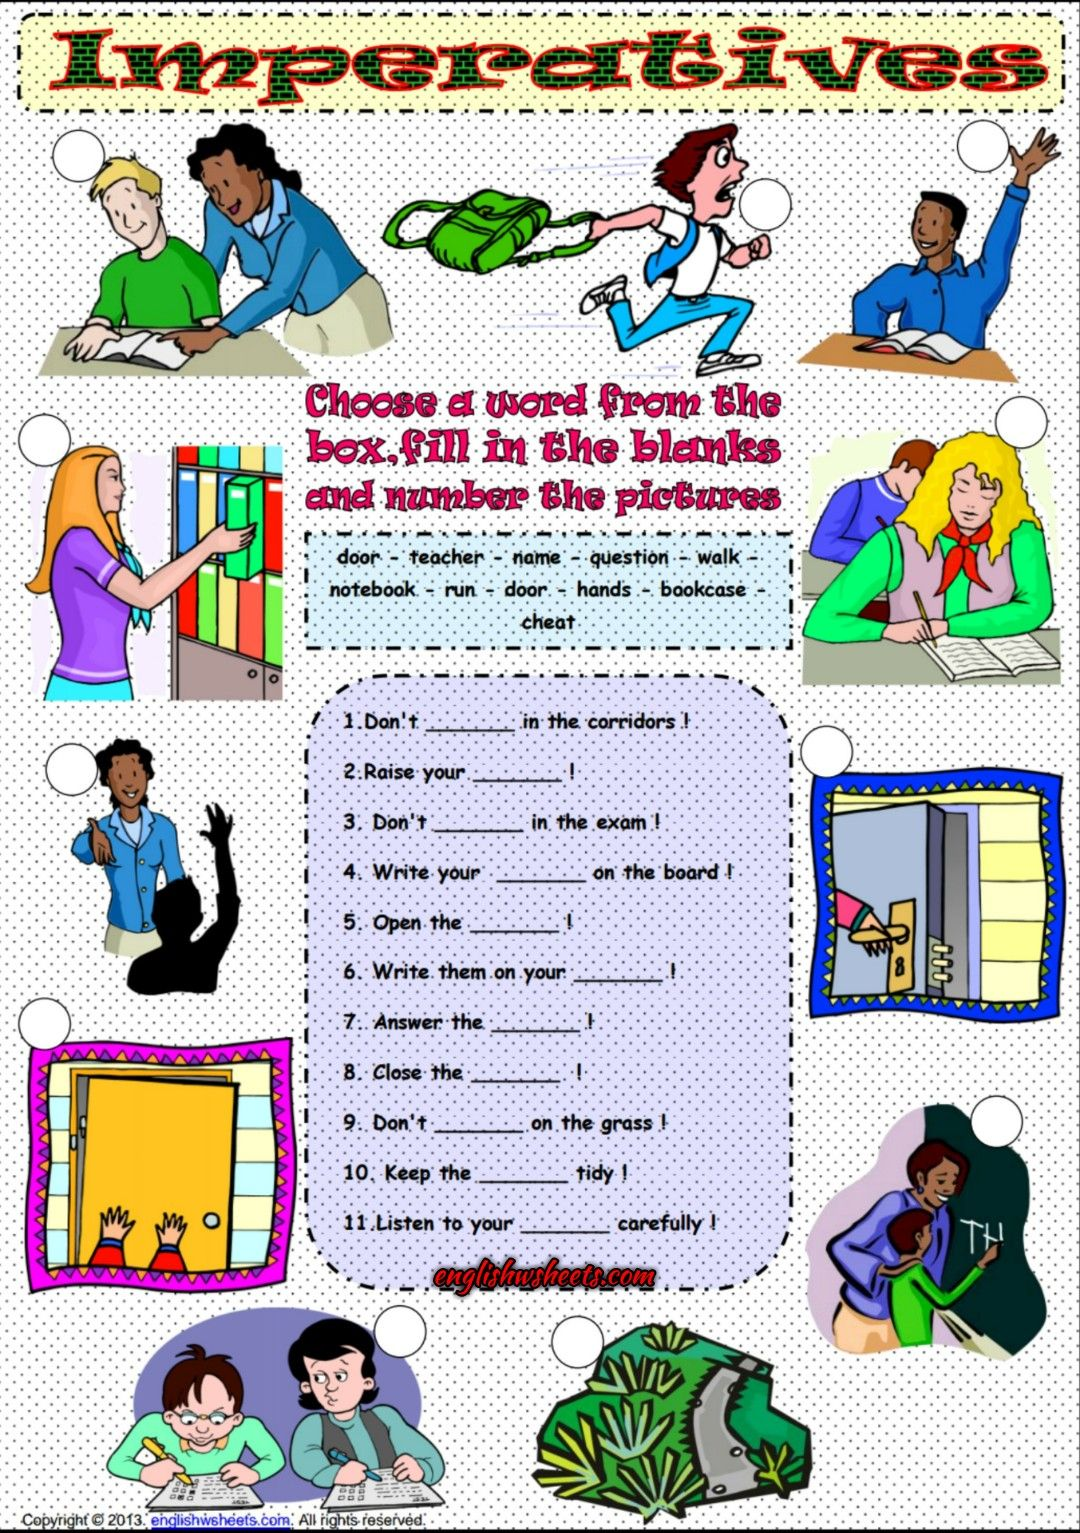 Imperative Mood Esl Grammar Exercises Worksheet